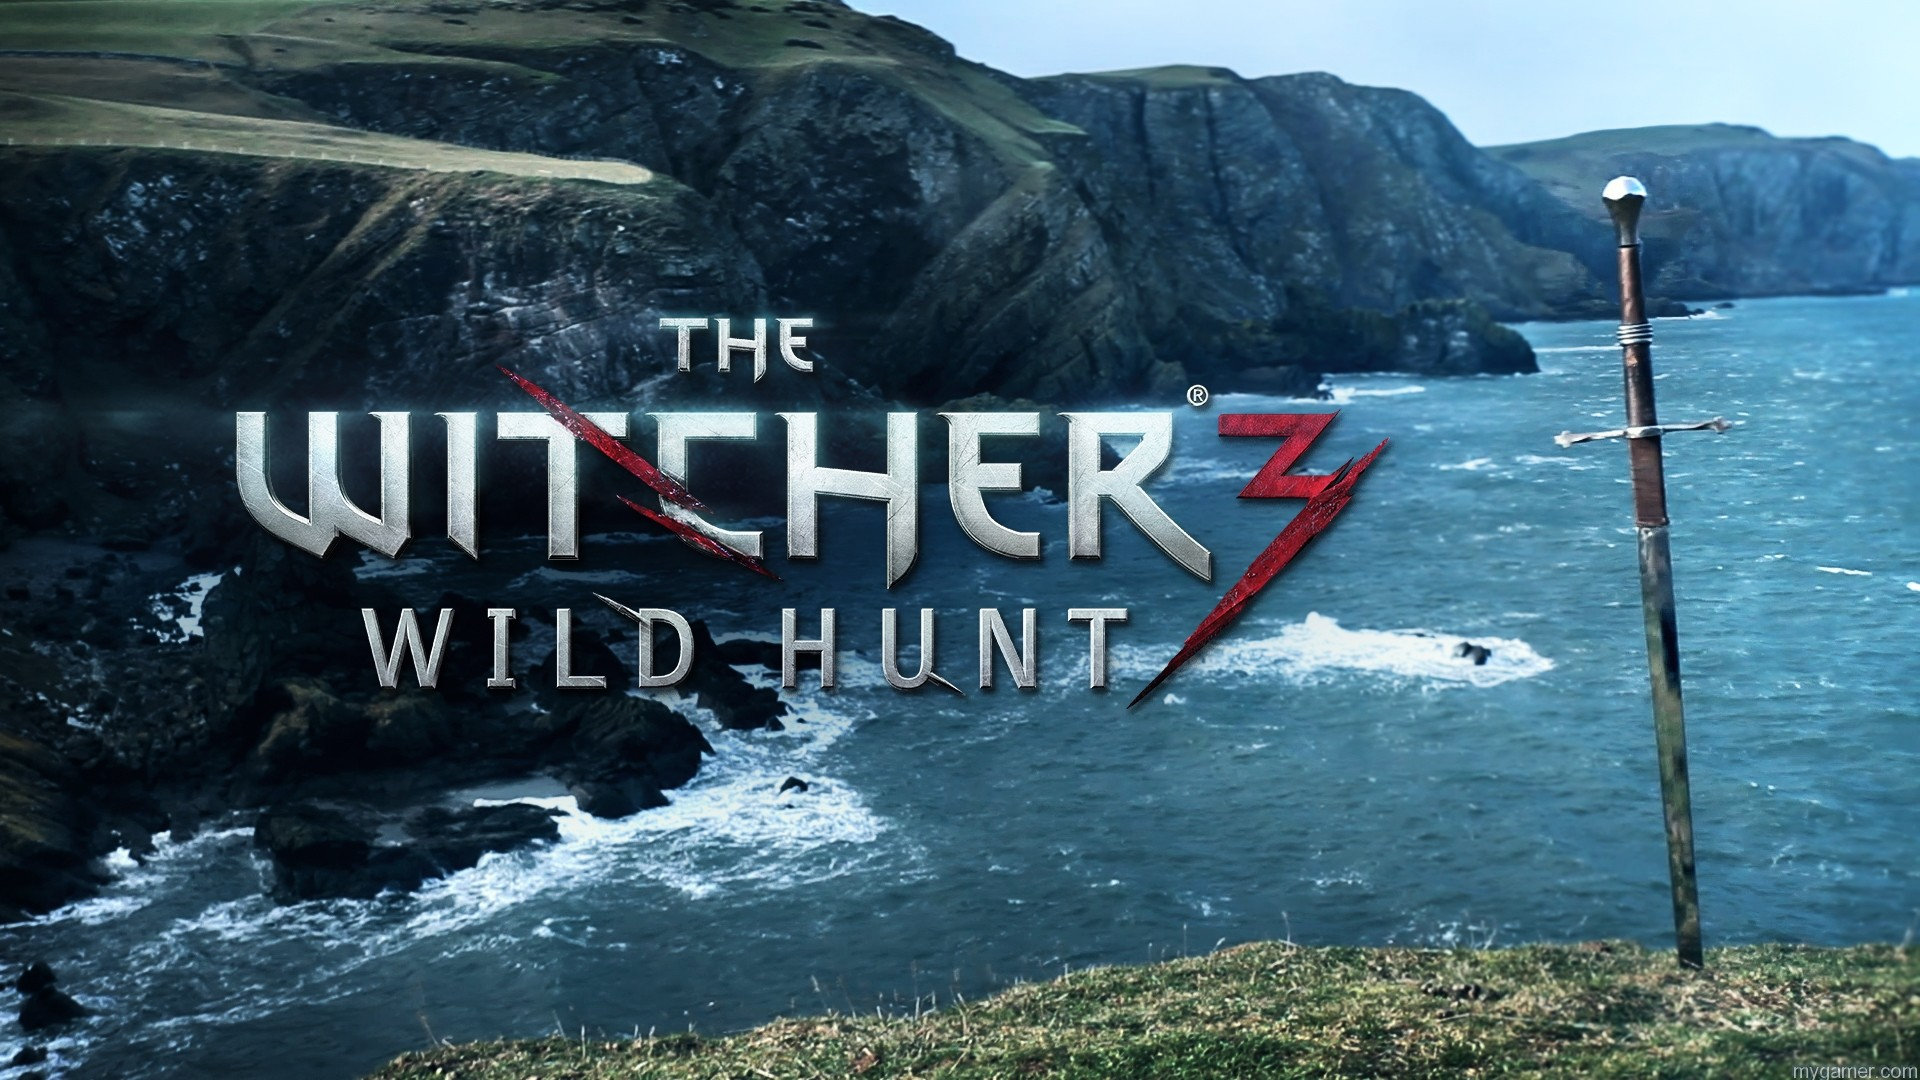 The Witcher 3 Wild Hunt Preview The Witcher 3: Wild Hunt Preview The Witcher 3: Wild Hunt Preview The Witcher 3 Wild Hunt Preview